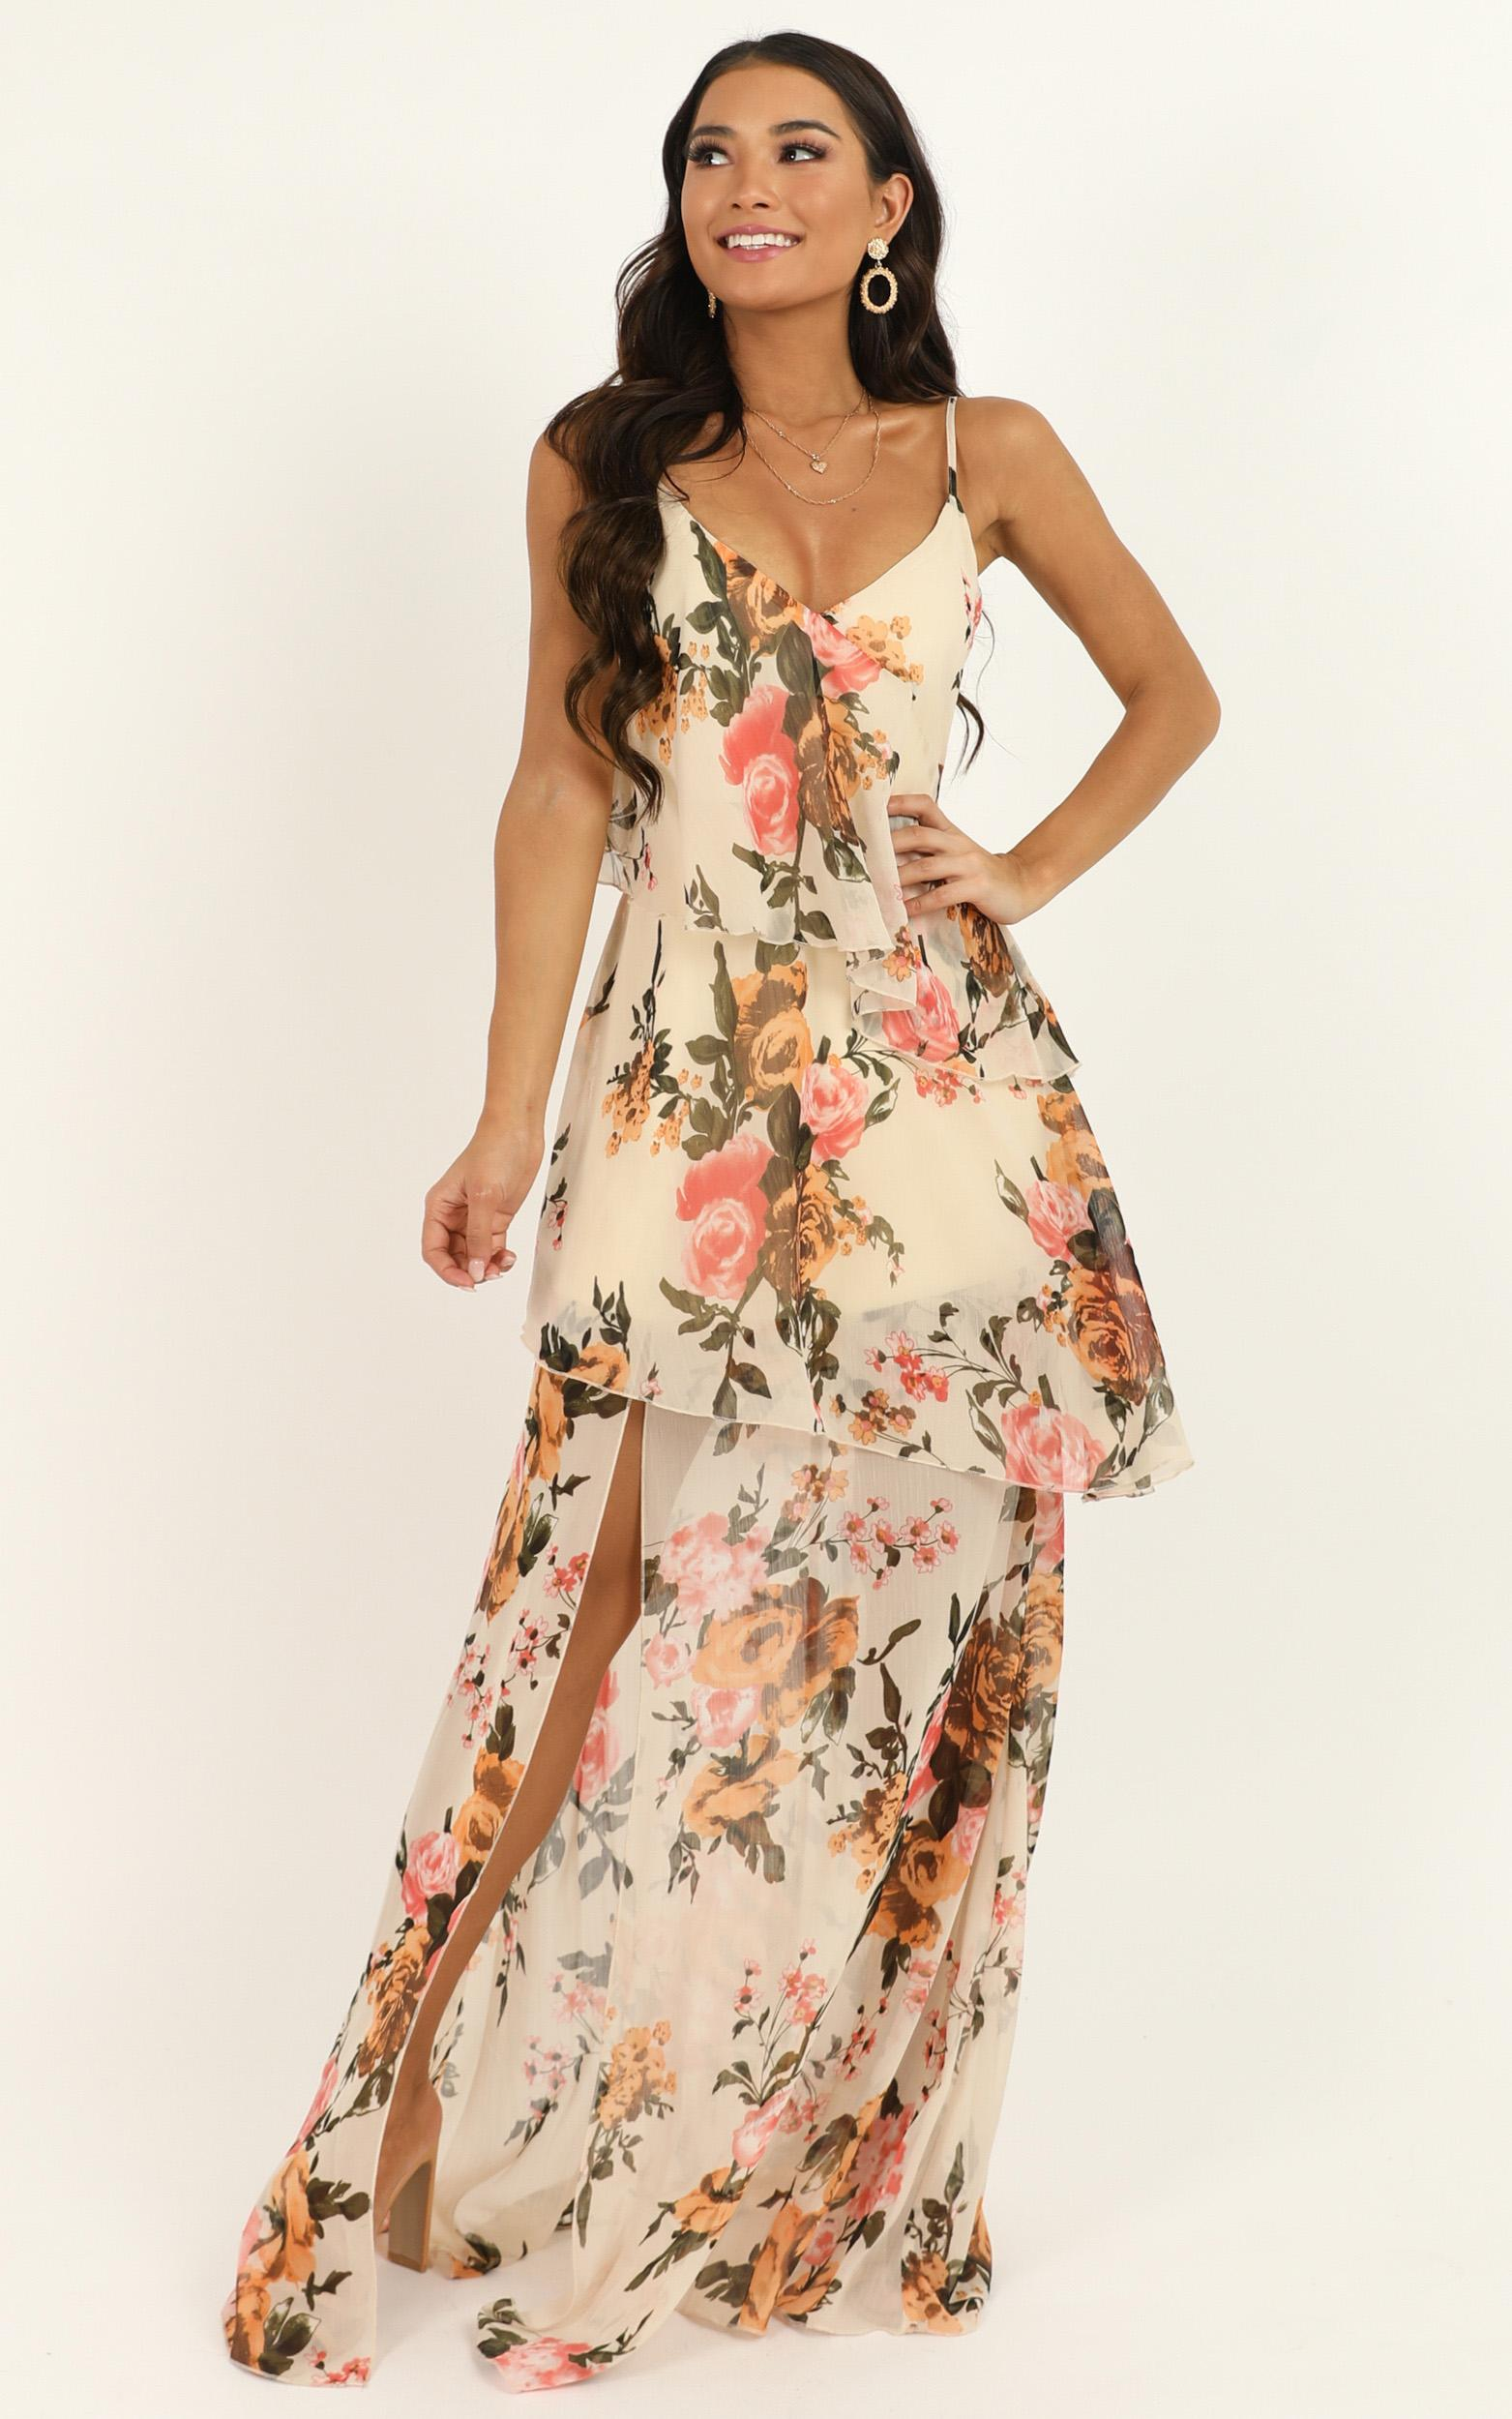 Flounce Maxi Dress in cream floral - 18 (XXXL), Cream, hi-res image number null